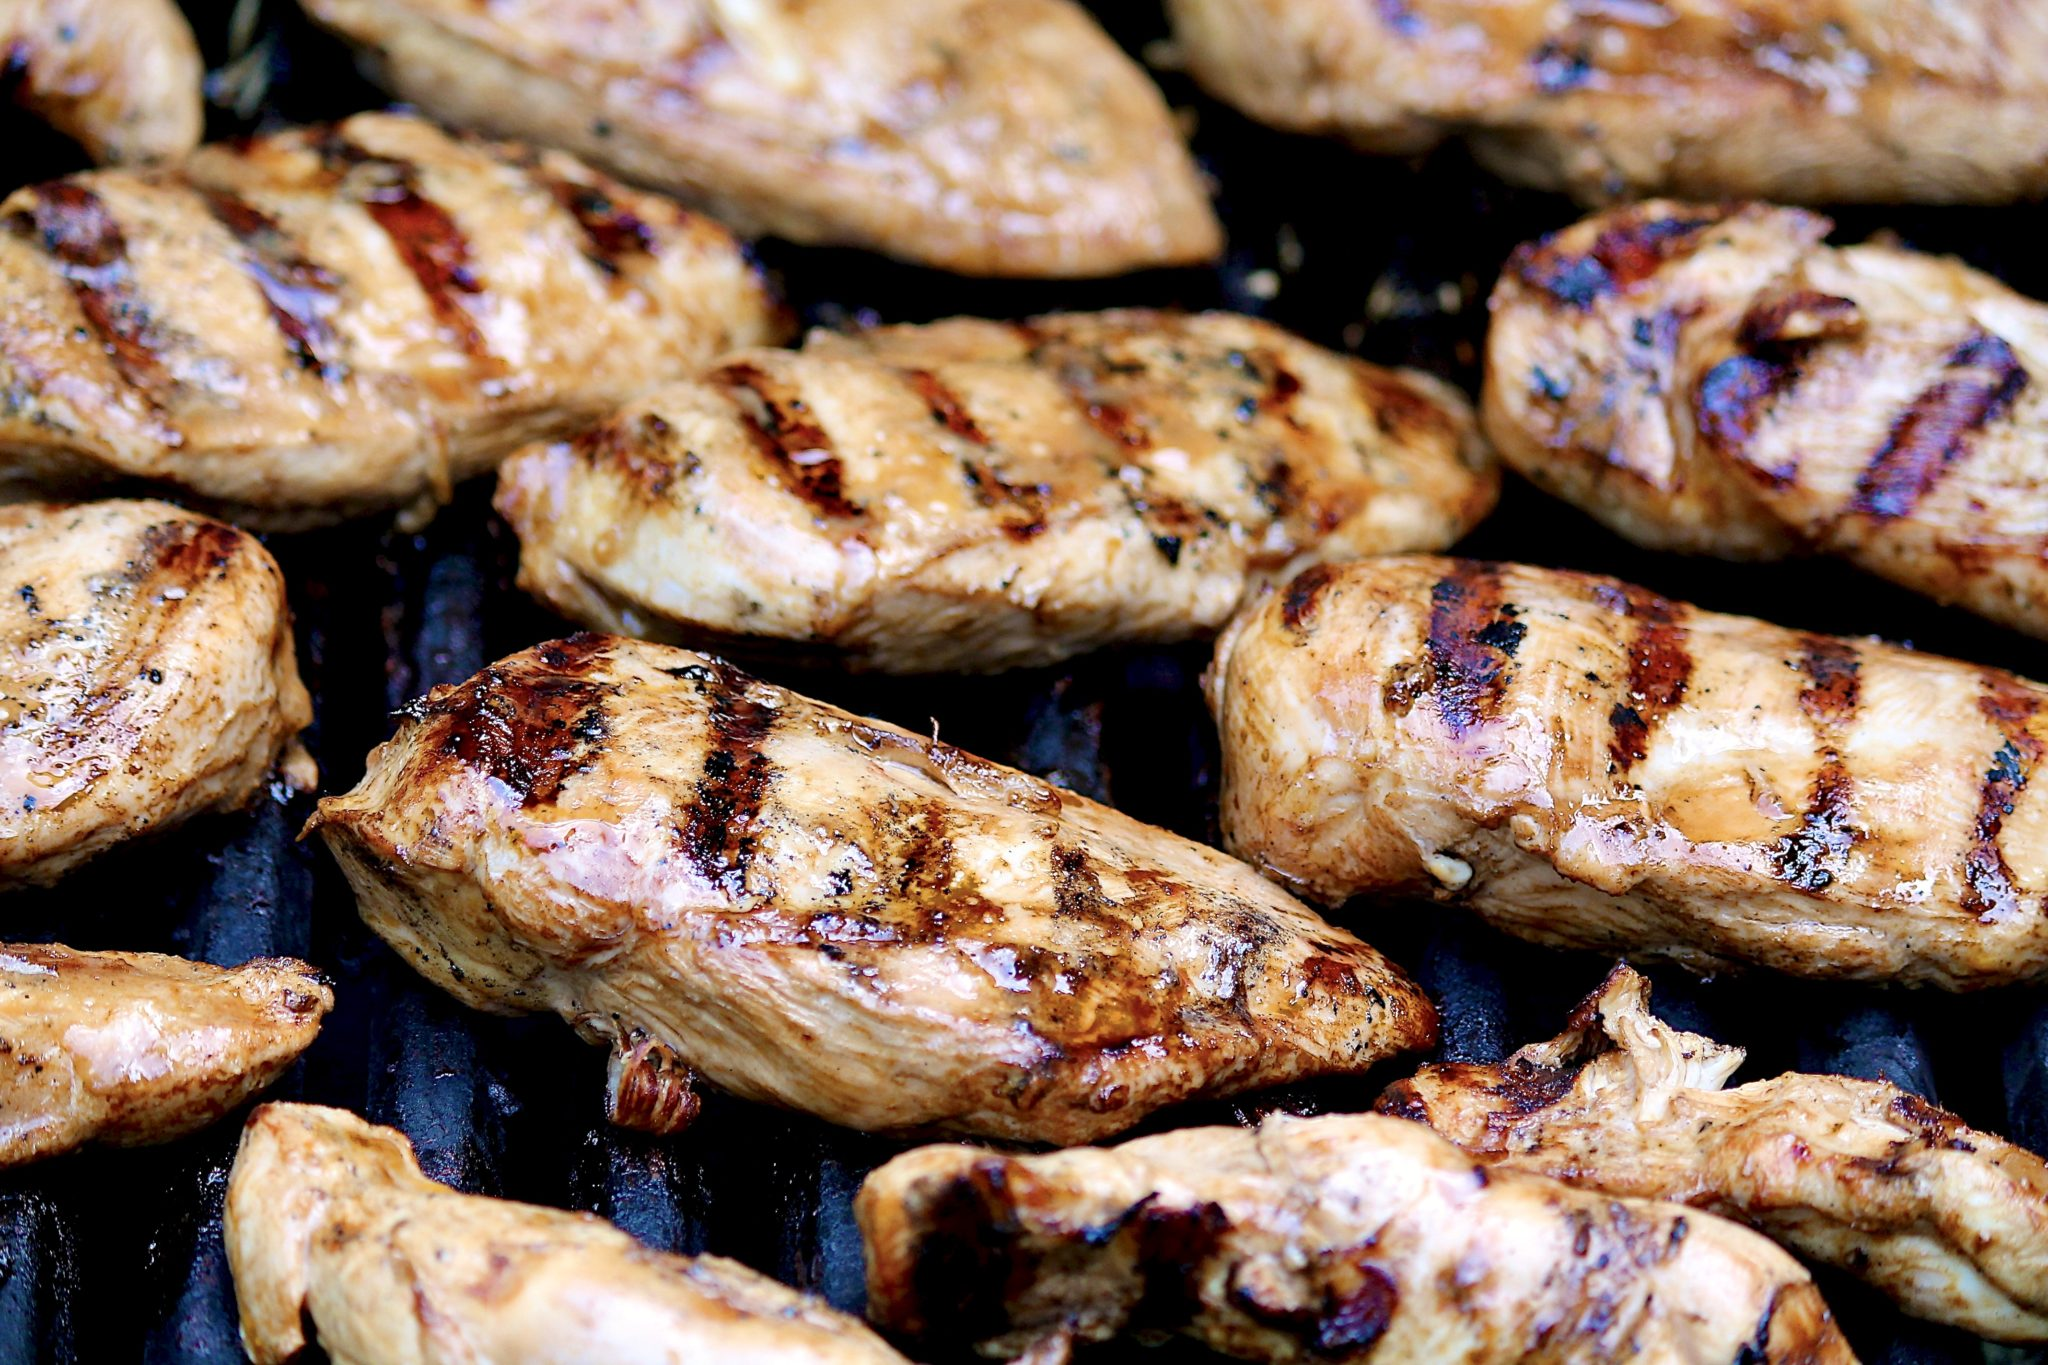 Equal parts of 3 simple ingredients make the best marinade for grilled chicken (and salmon and veggies!)